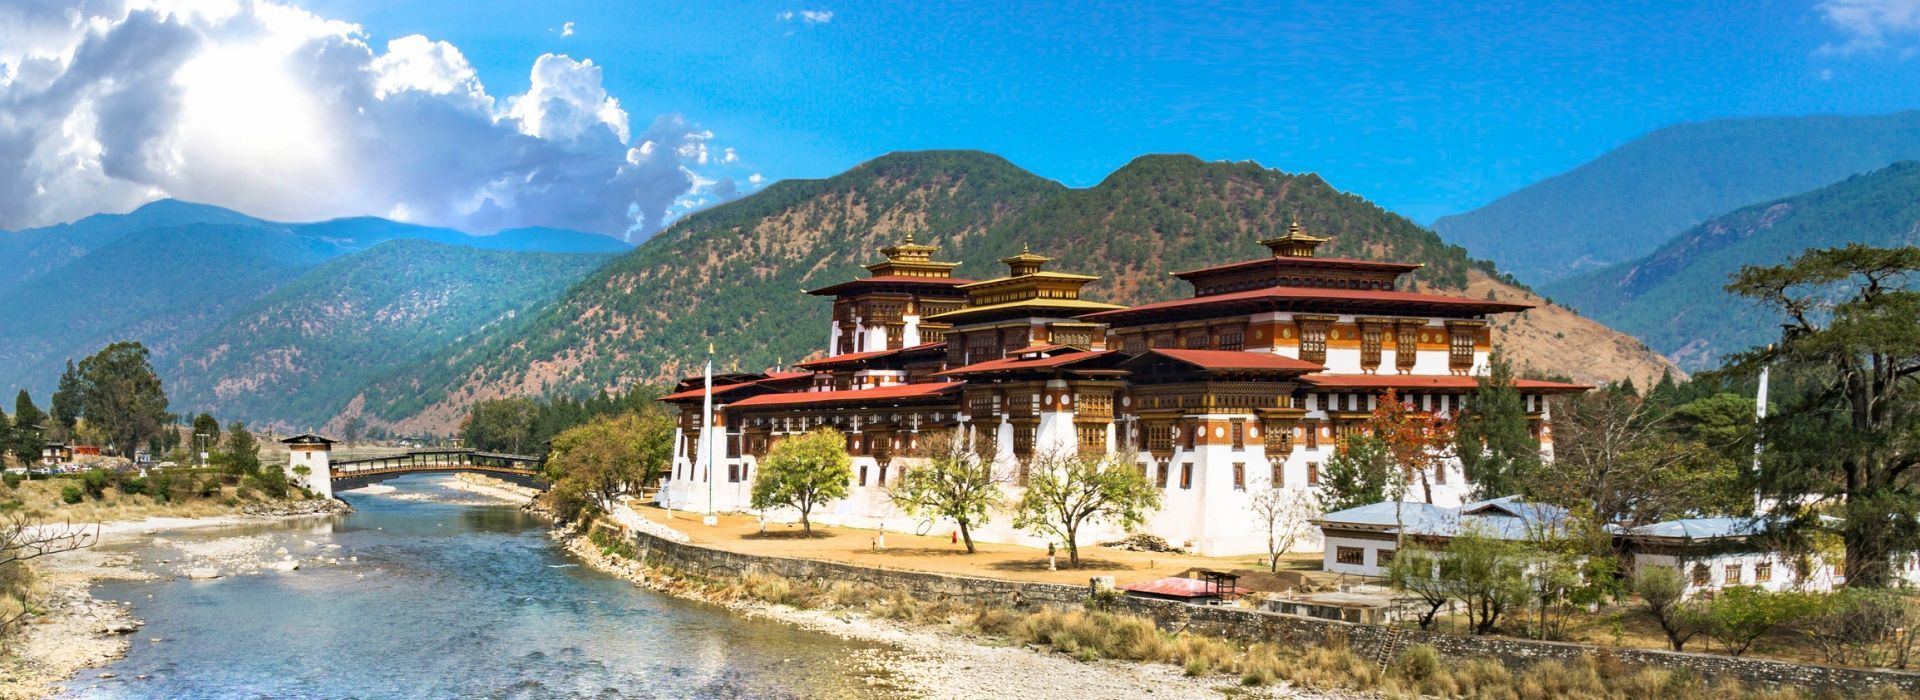 Cultural, religious and historic sites Tours in Bhutan